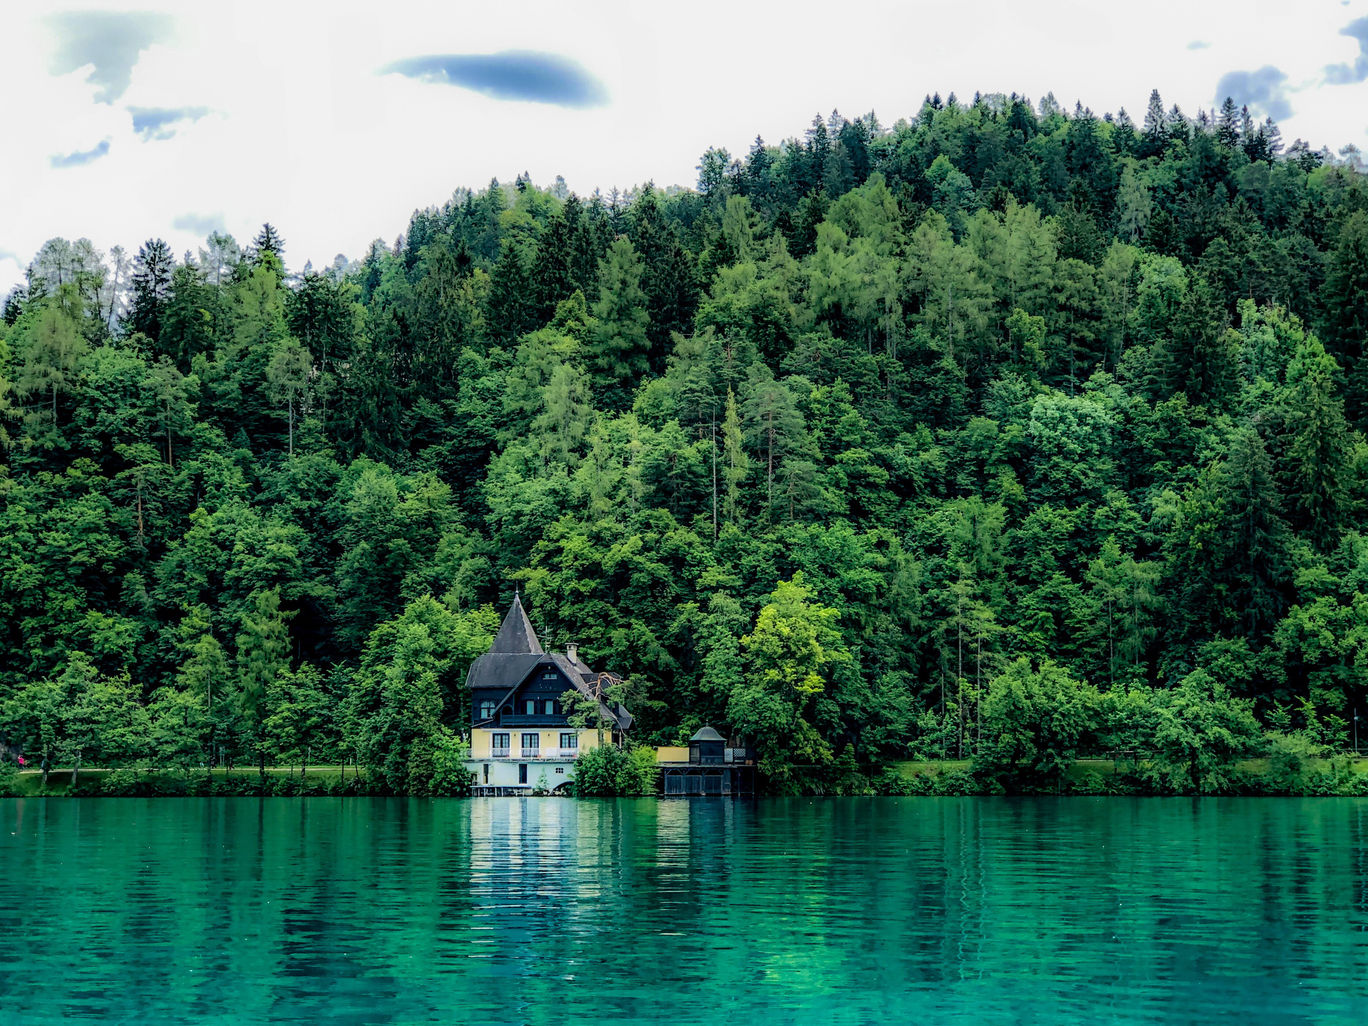 Photo of Trip to lake bled in Slovenia ????????. Eurotrip 2019 #SelfieWithAView #TripotoCommunity #lakebled By Shardul Shah